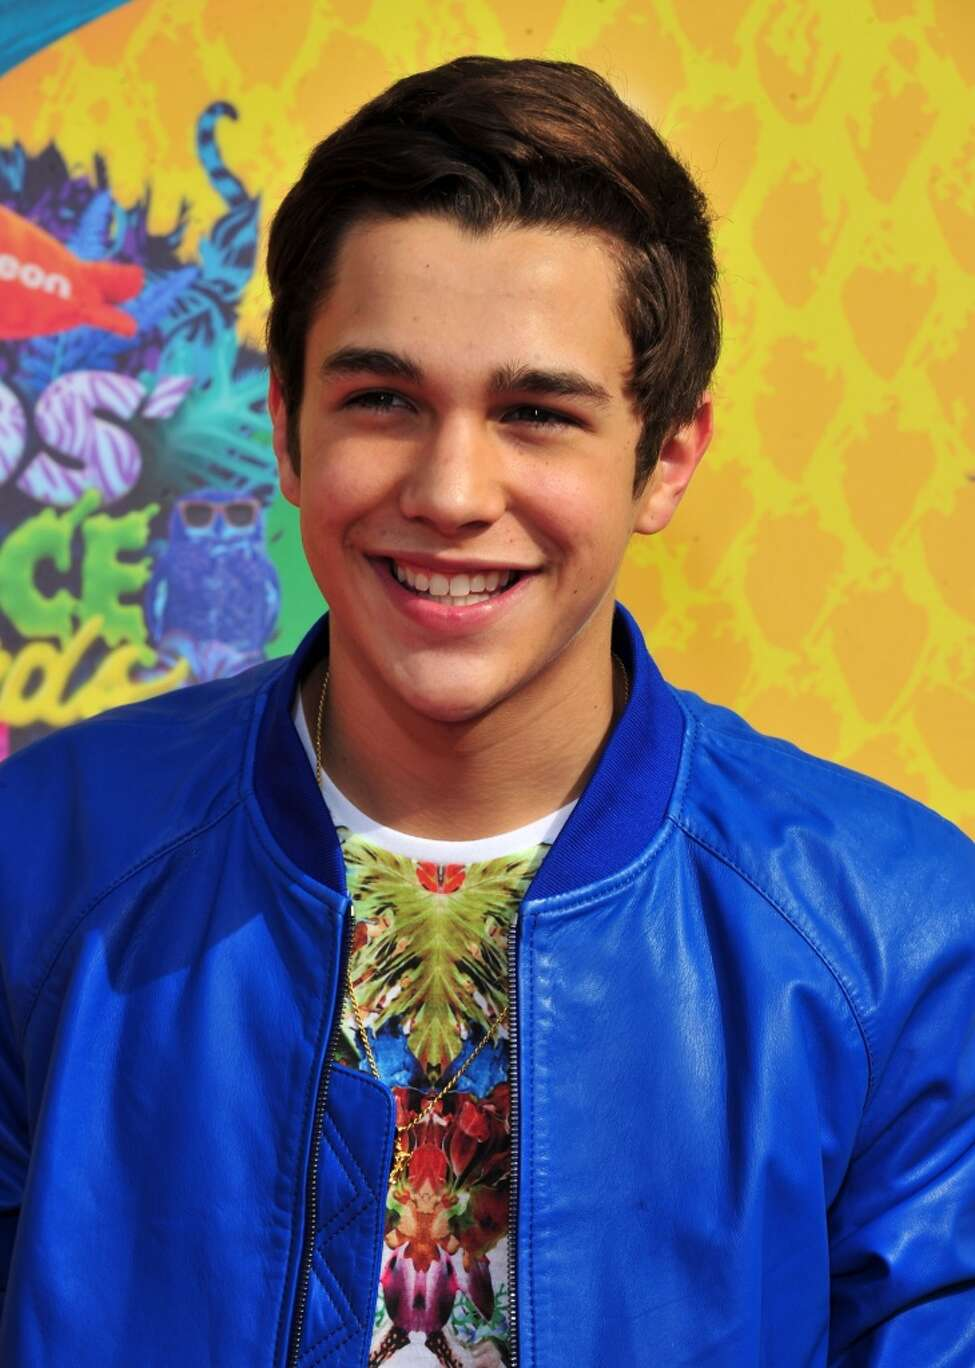 Speculations from fans sourcing social media are saying Mahone has started a new flame with